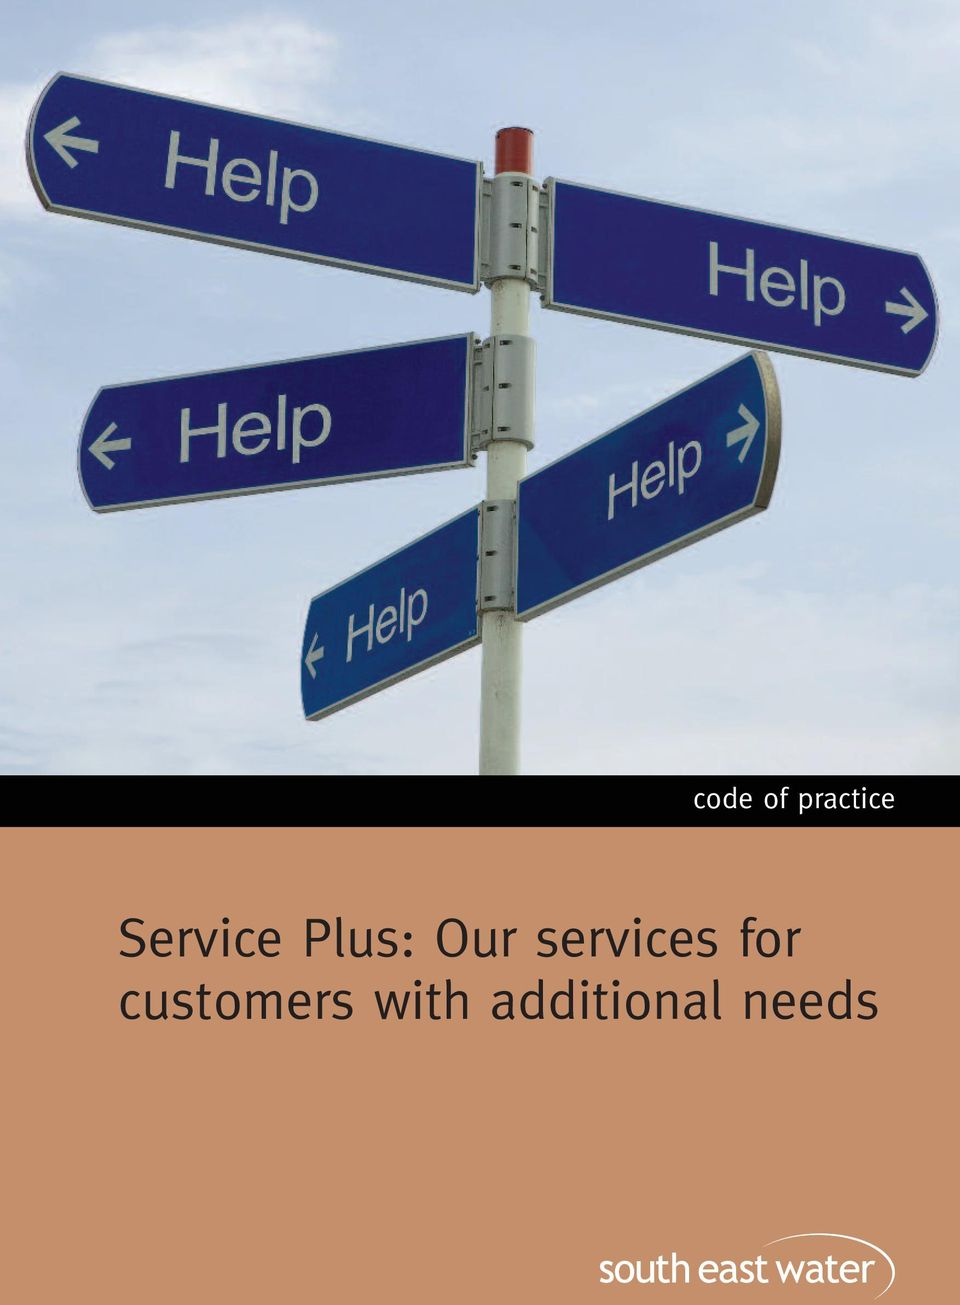 services for